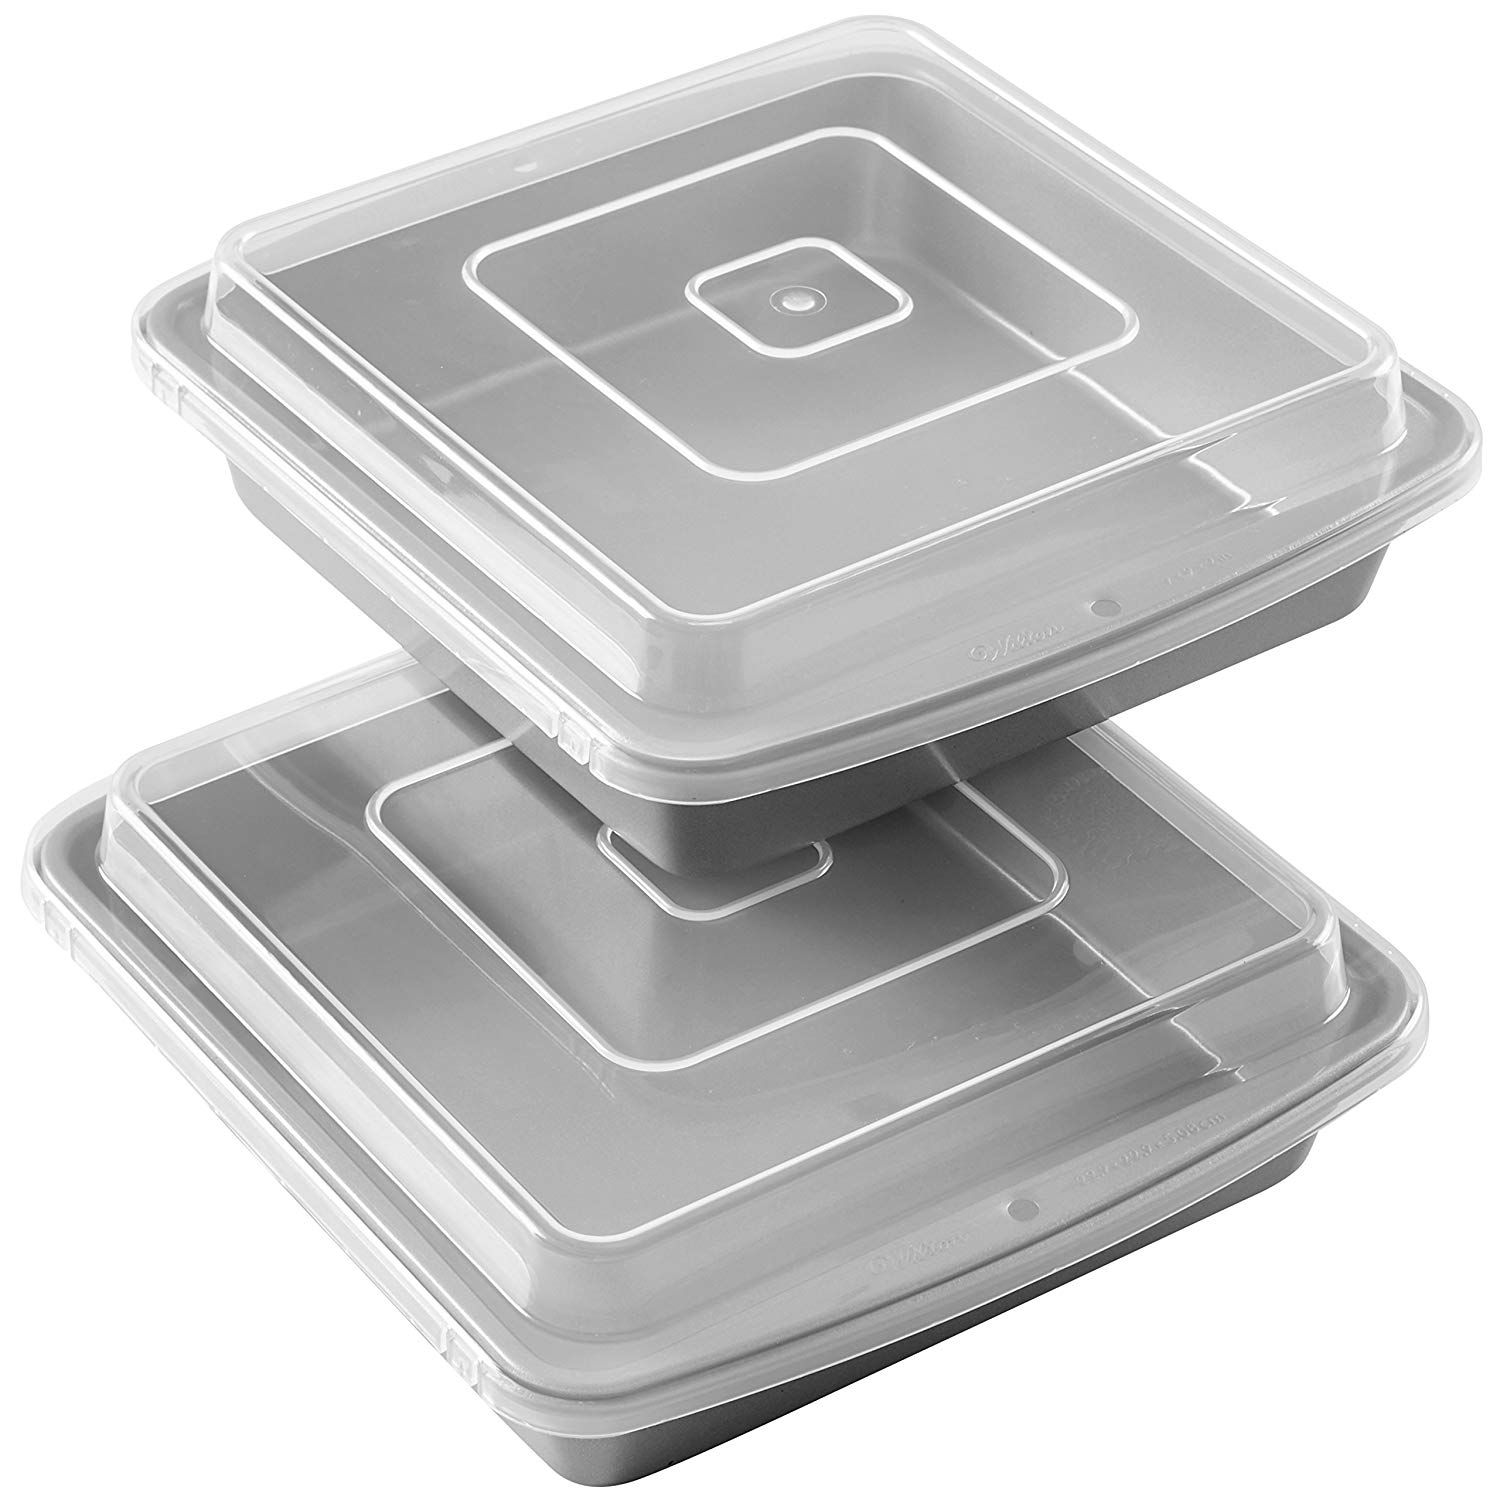 45+ 9 inch cake pan square ideas in 2021